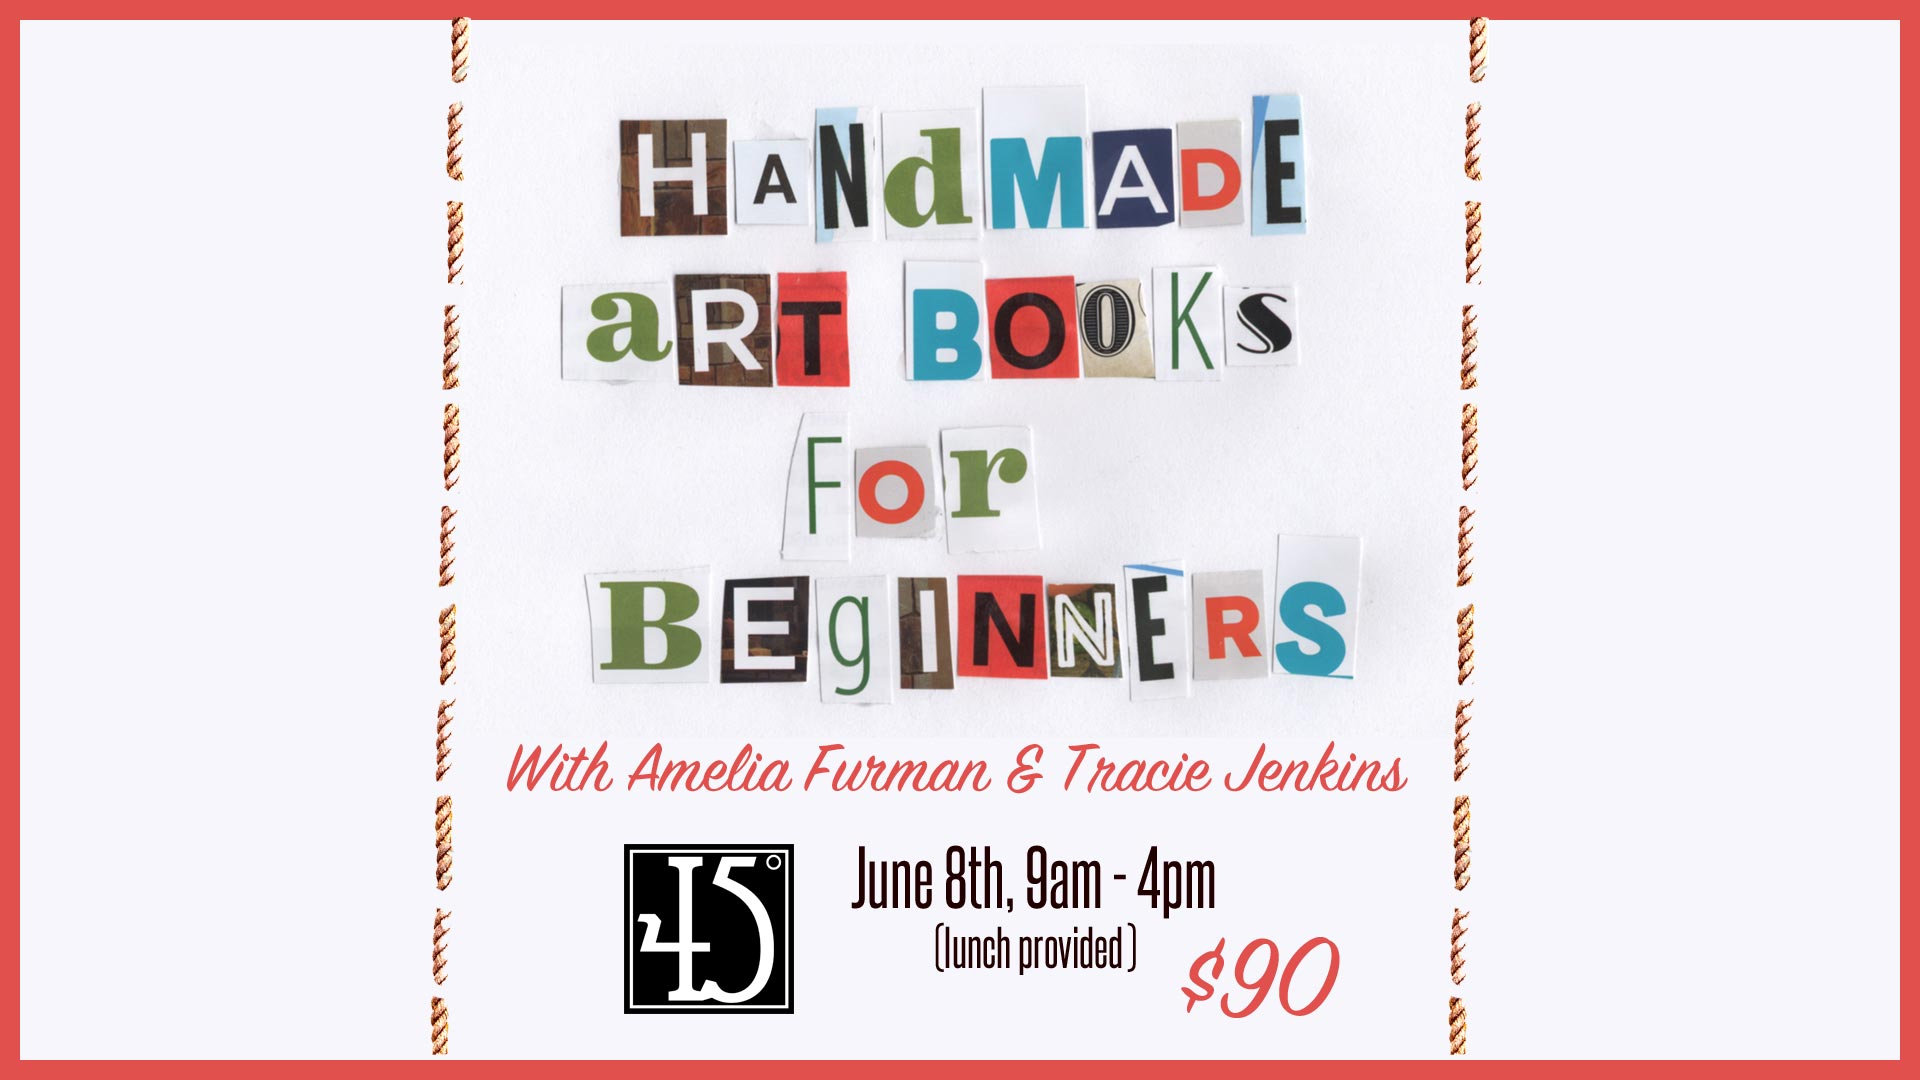 Handmade-Books-June-8th